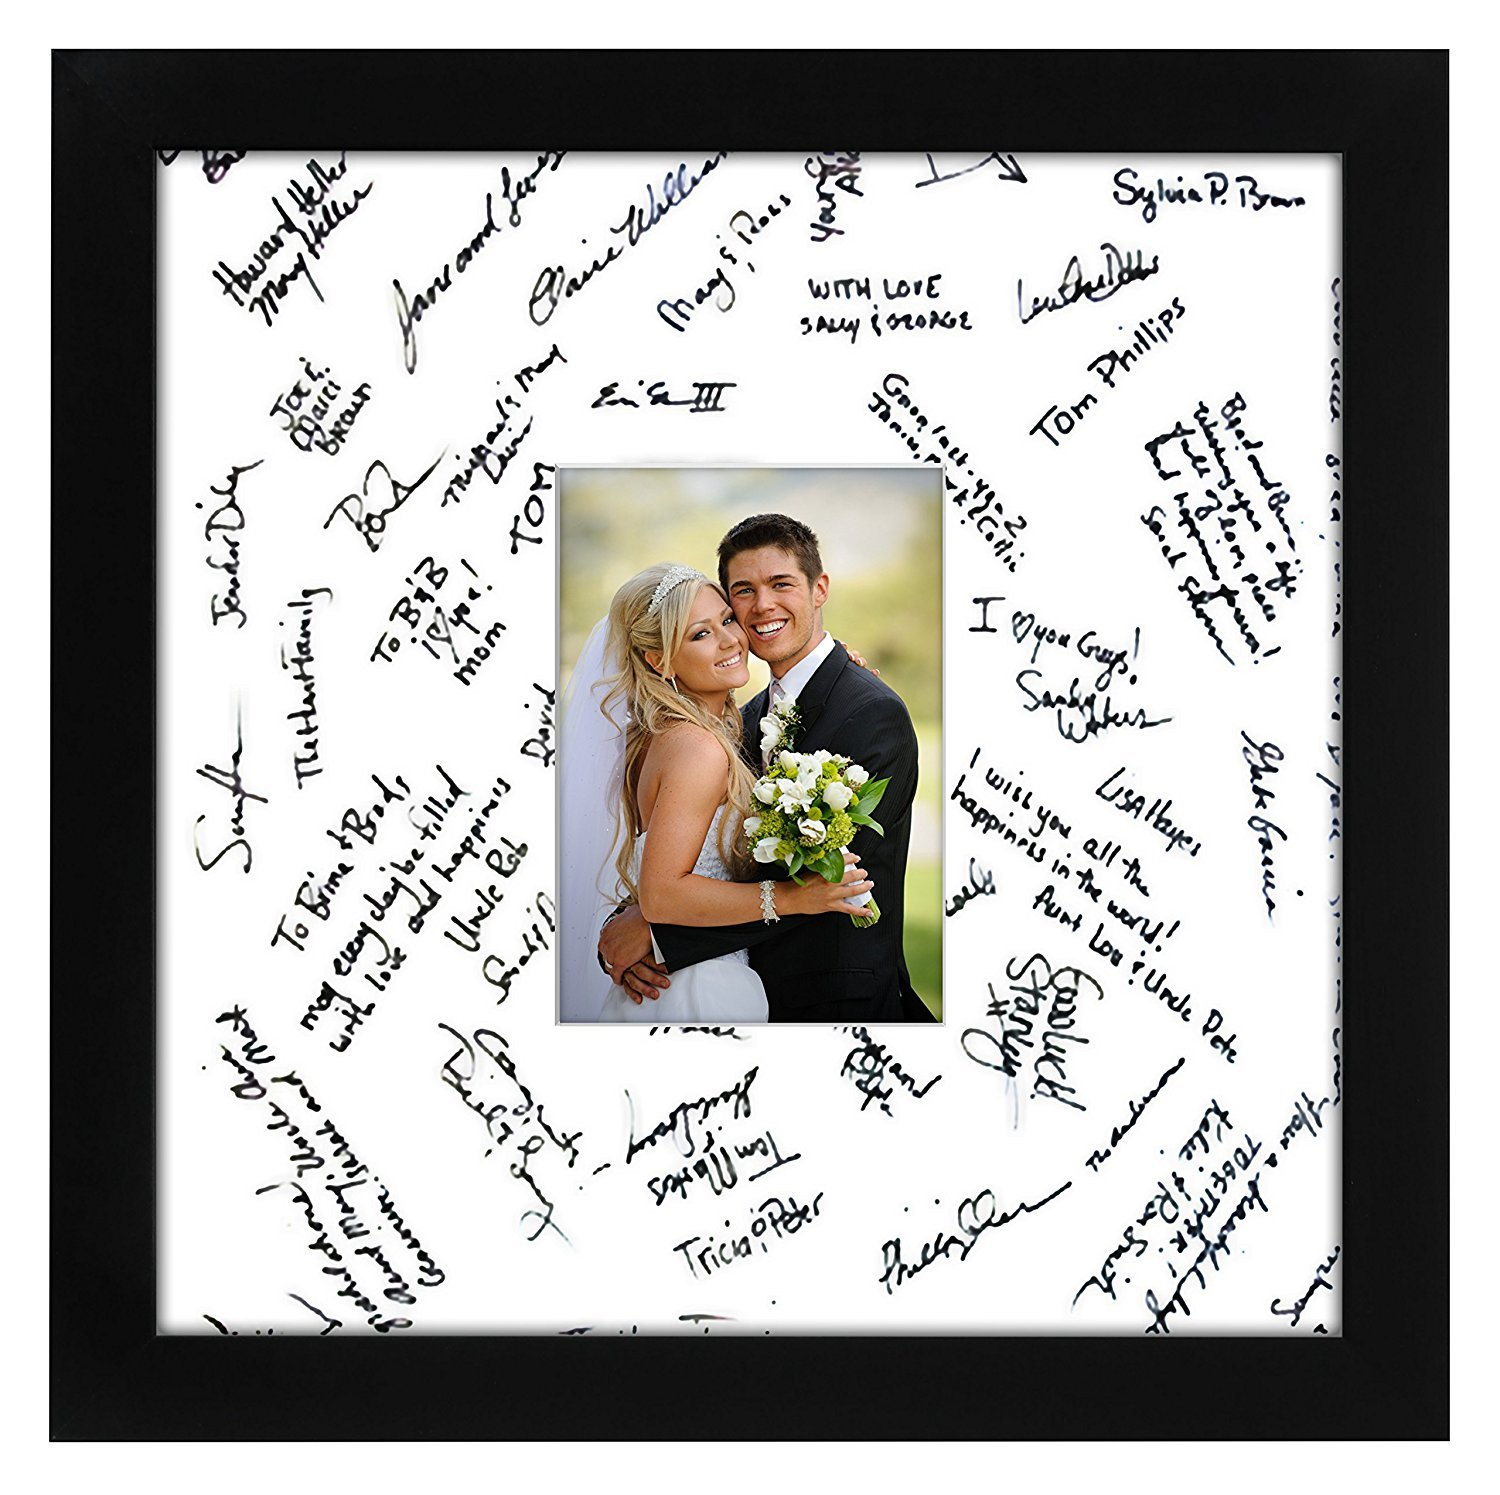 Americanflat 14x14 Wedding Signature Picture Frame, Black by Americanflat